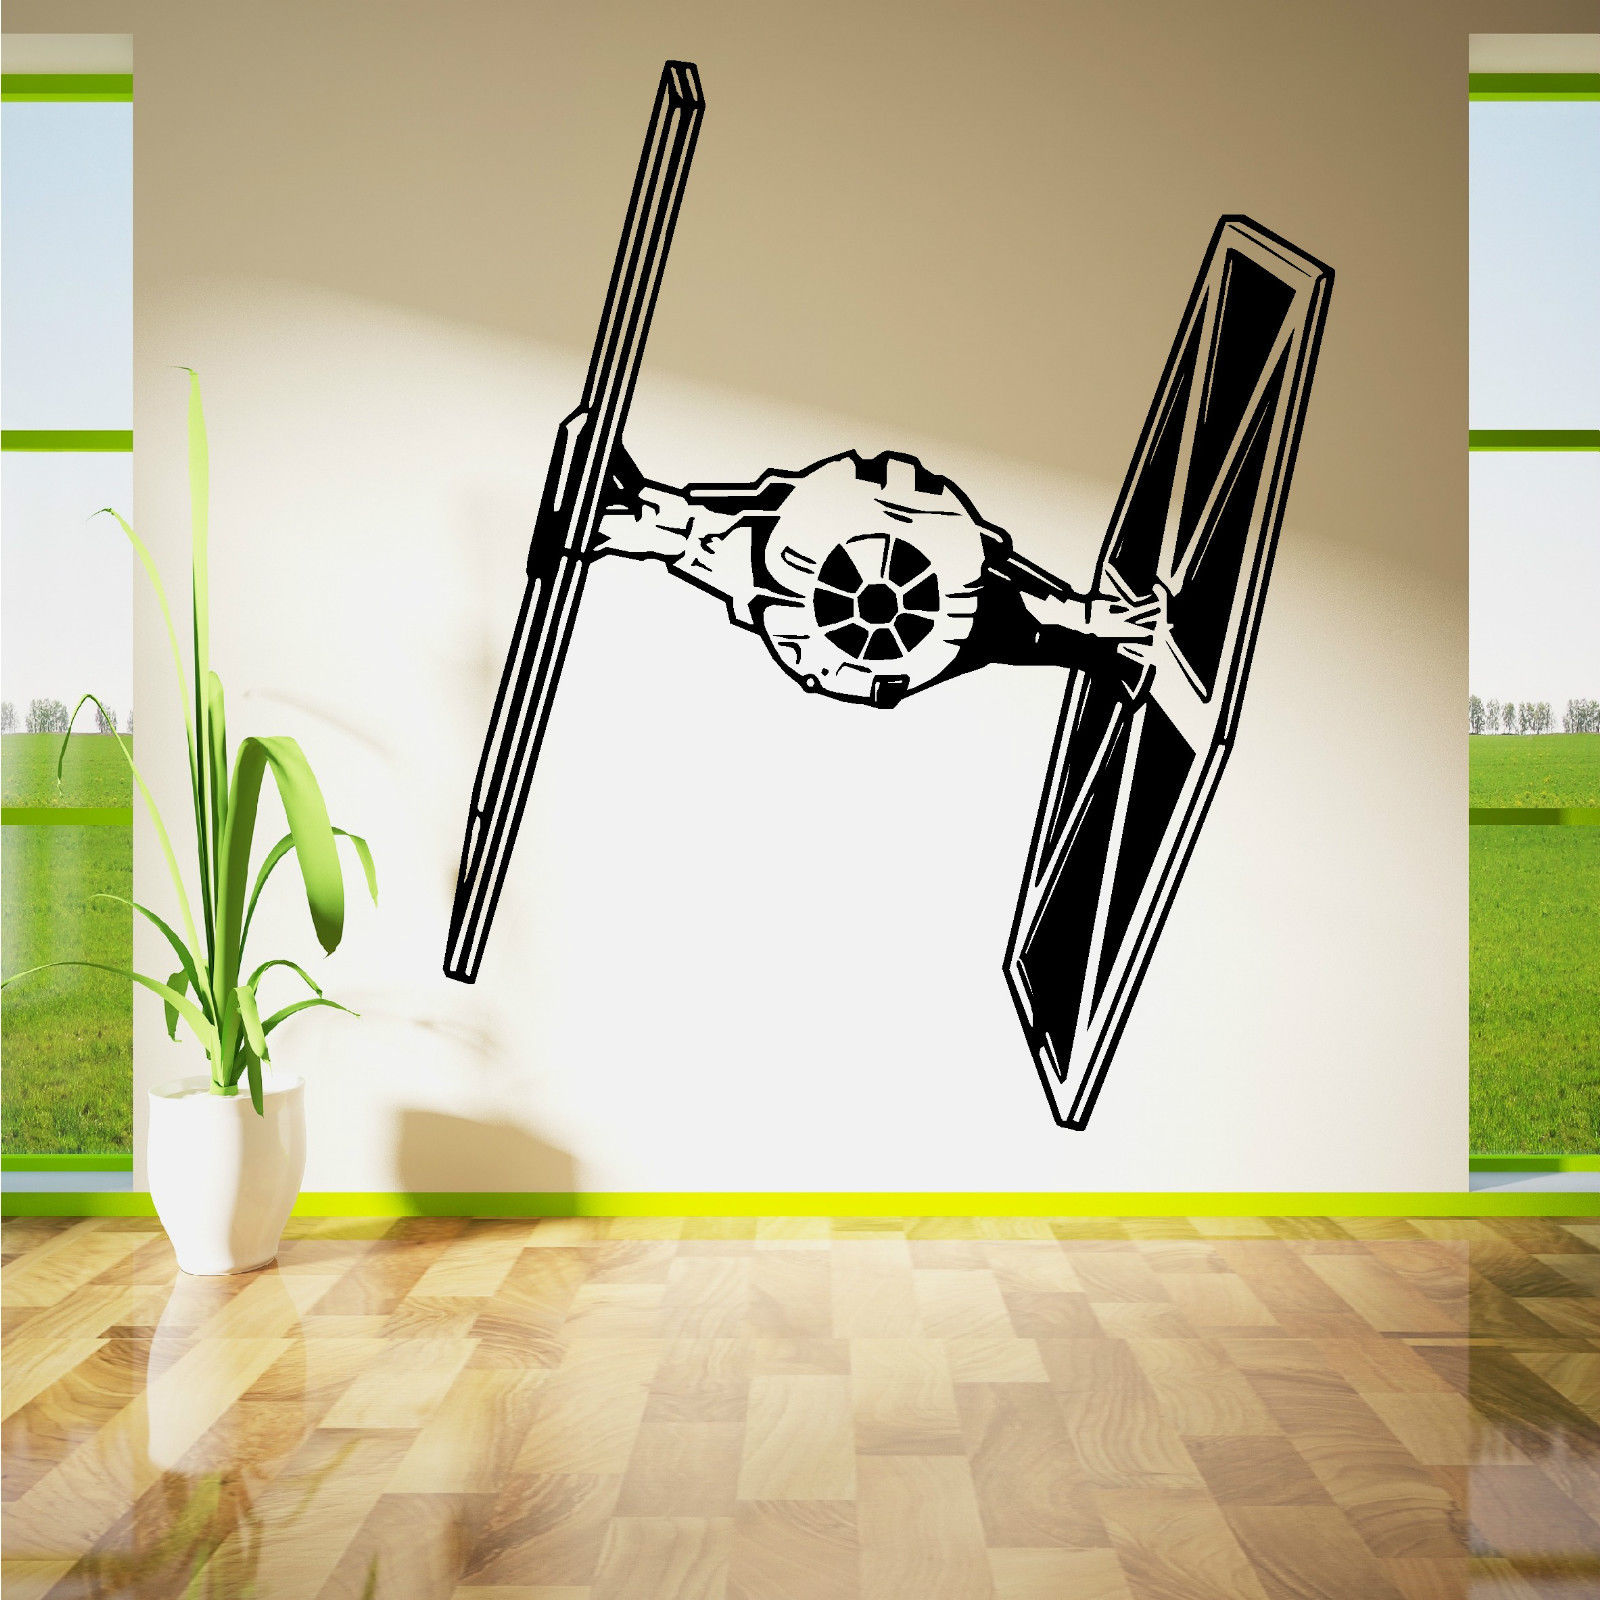 Deco Chambre Star Wars us $6.64 5% off|d270 star wars tie fighter wall art vinyl sticker room  removable decal movie stencil wall poster spaceship mural kids room  decor|room